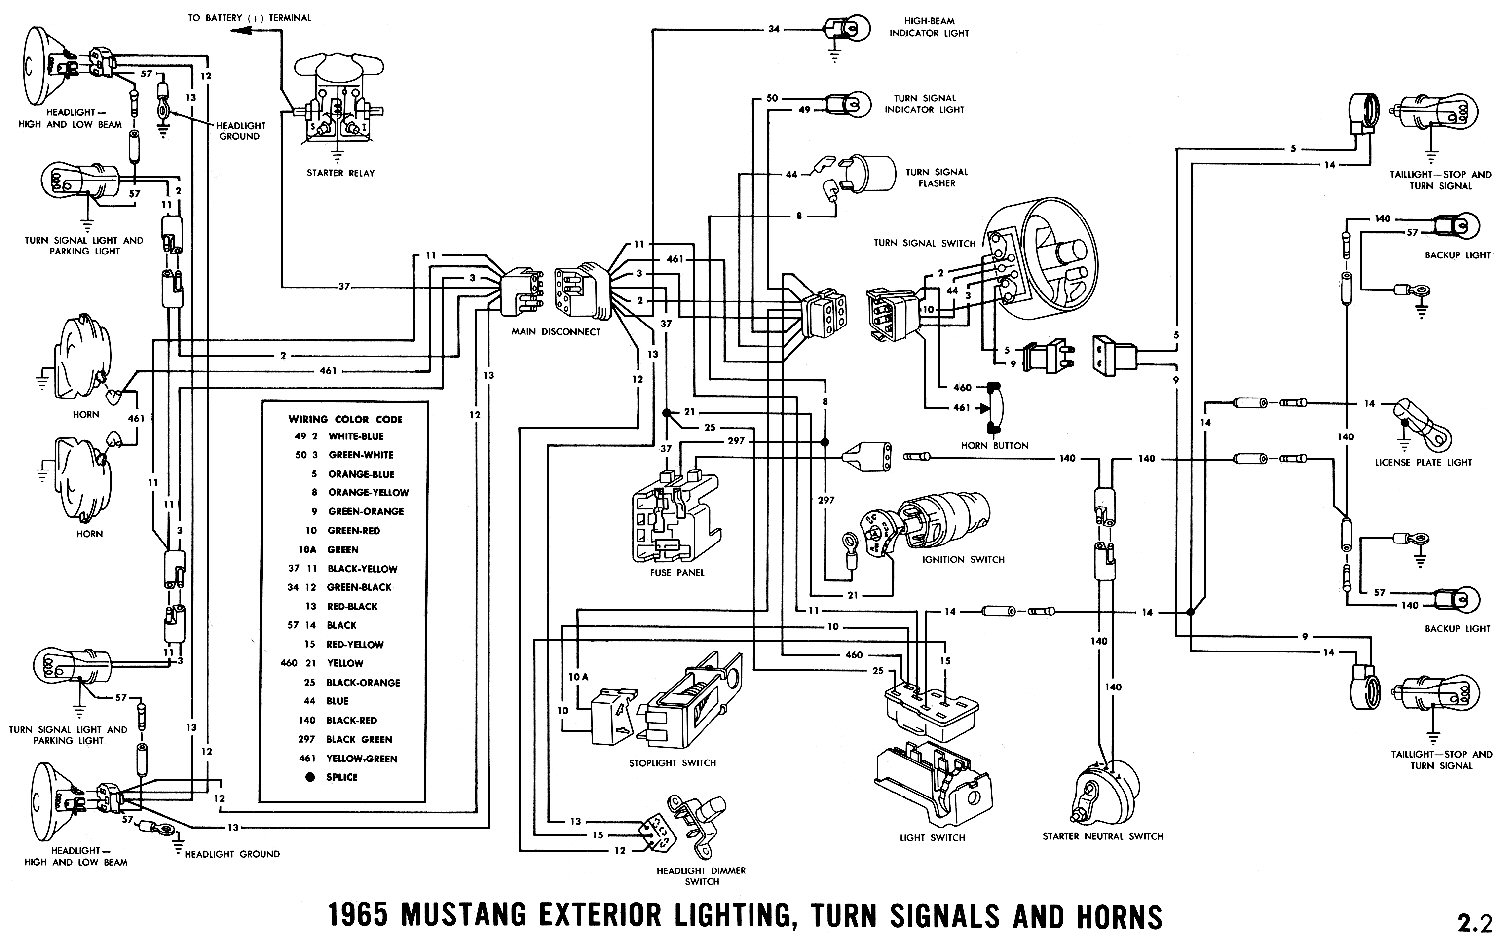 headlight wiring diagram on 1988 mustang gt fuel pump wiring diagram